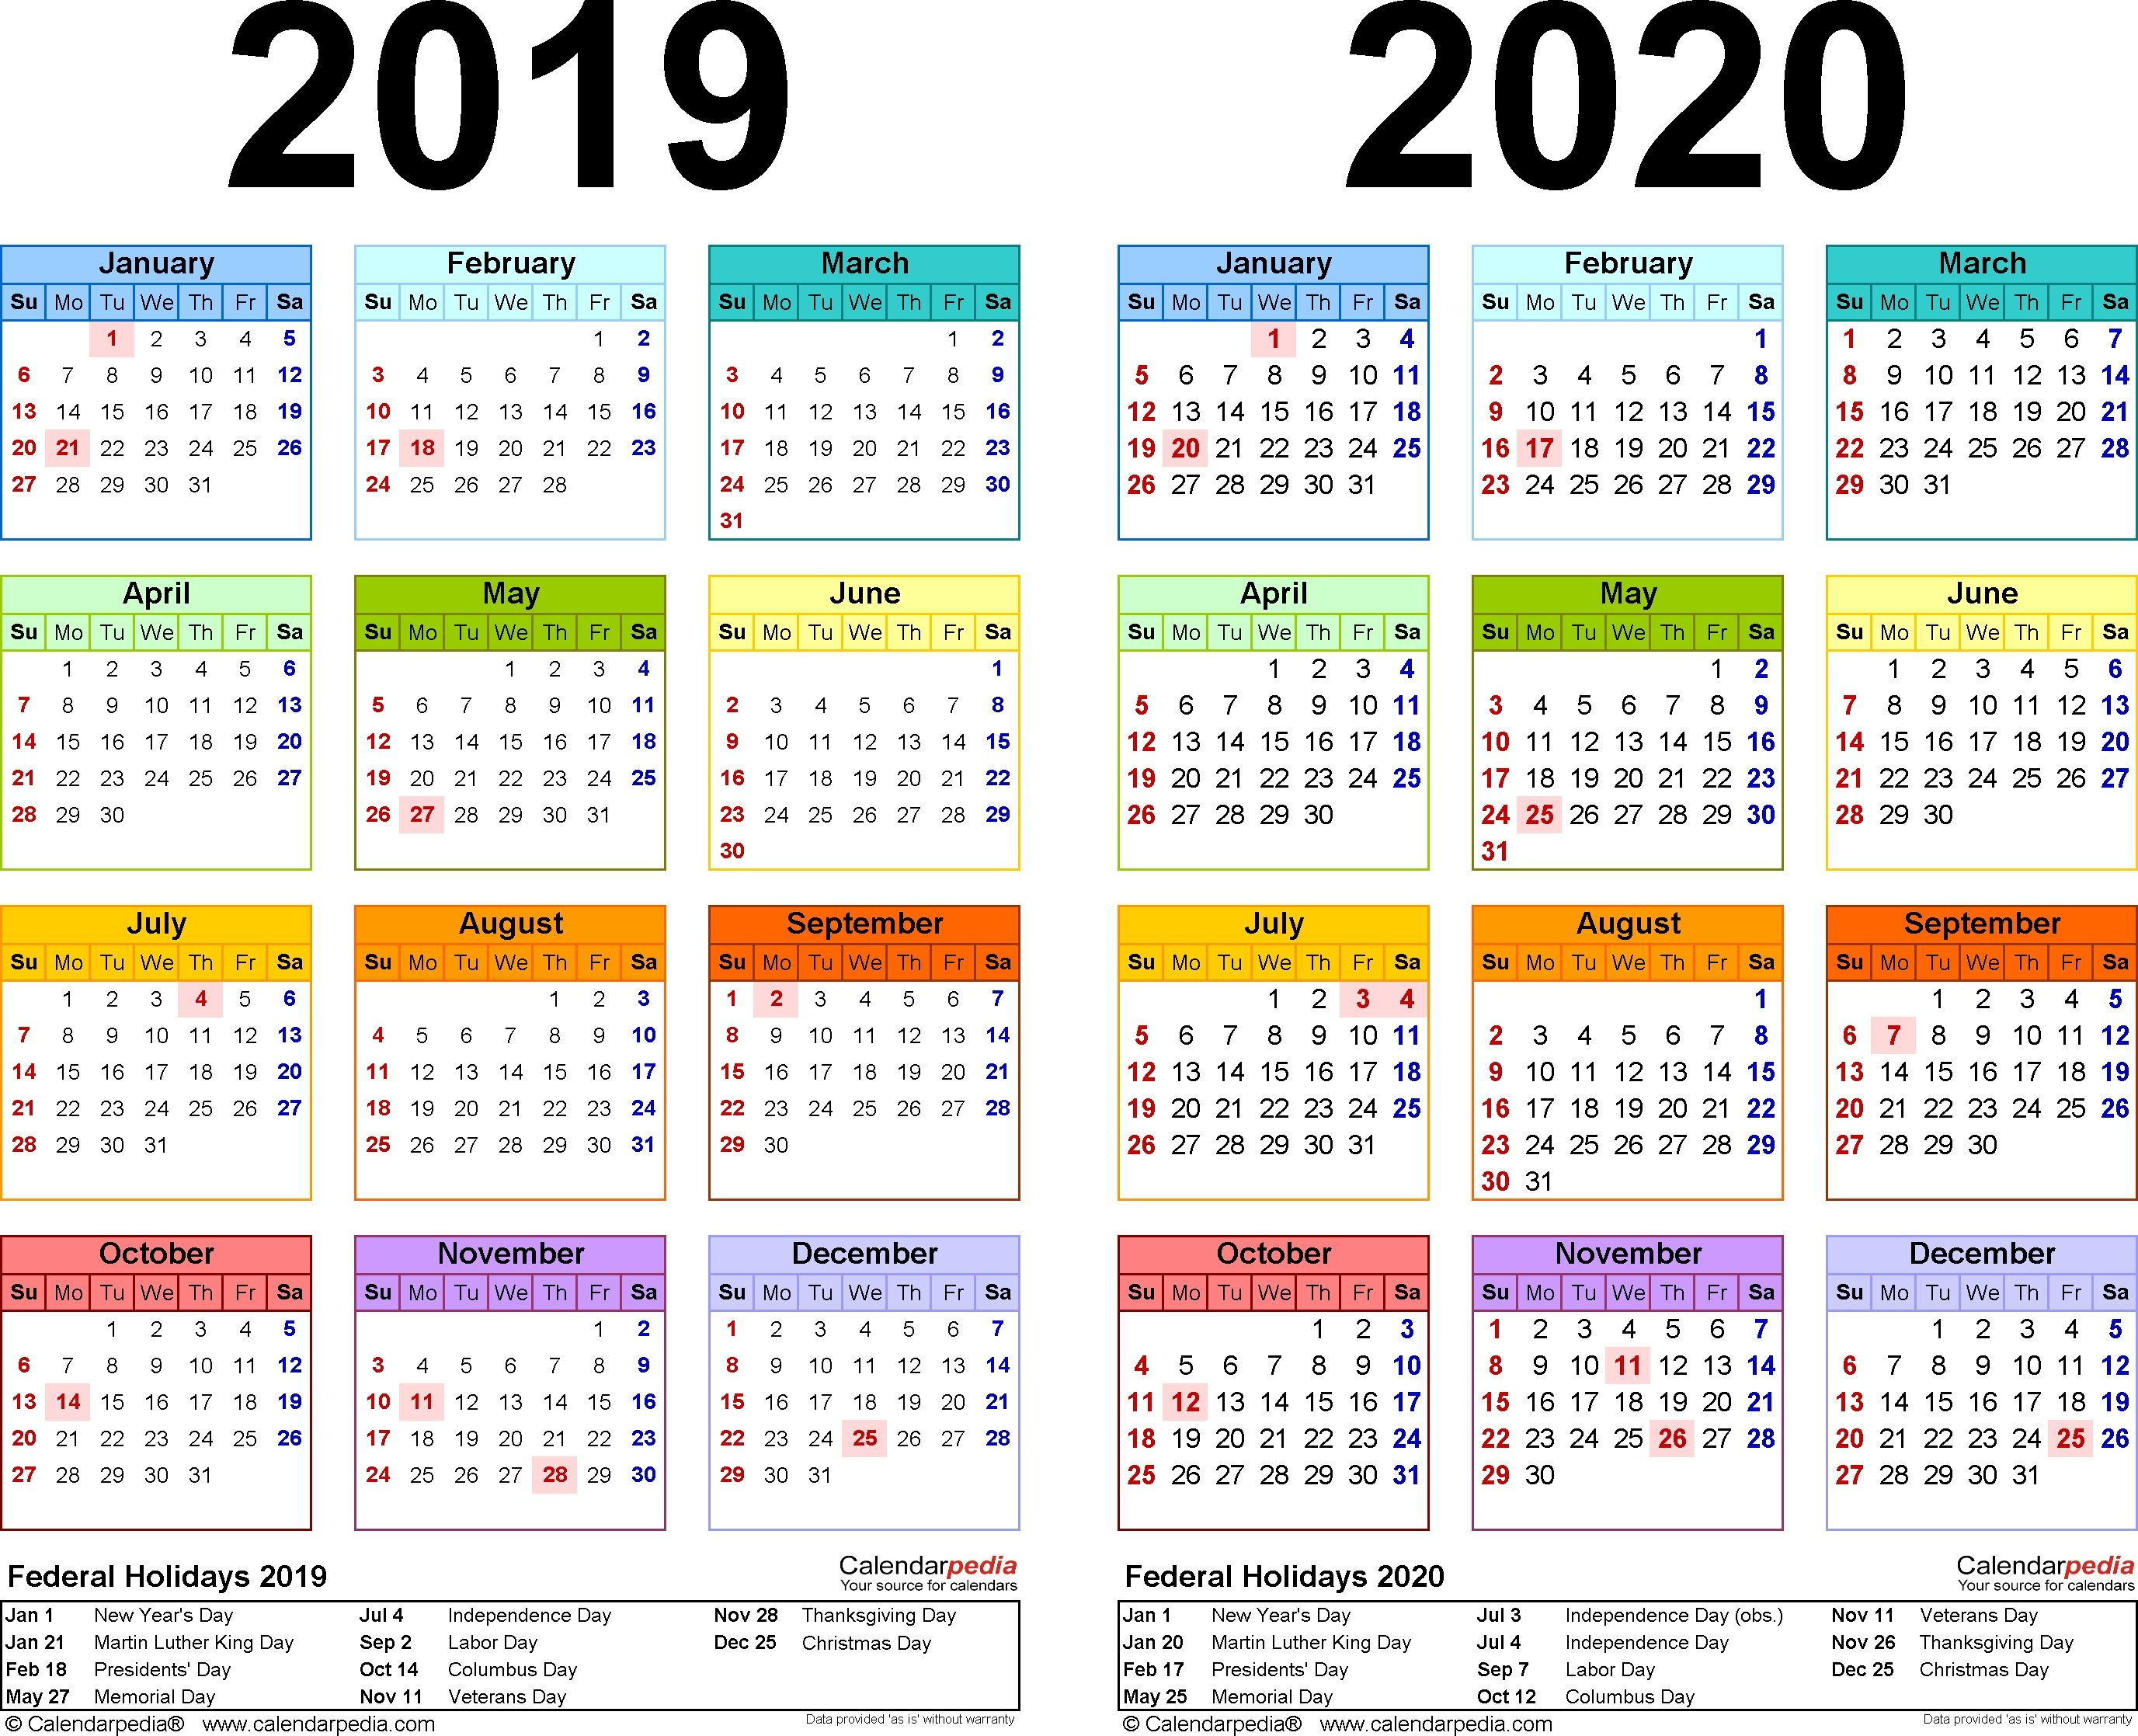 2019-2020 Calendar - Free Printable Two-Year Excel Calendars 2020 intended for 2020 Year At A Glance Free Printable Calendar